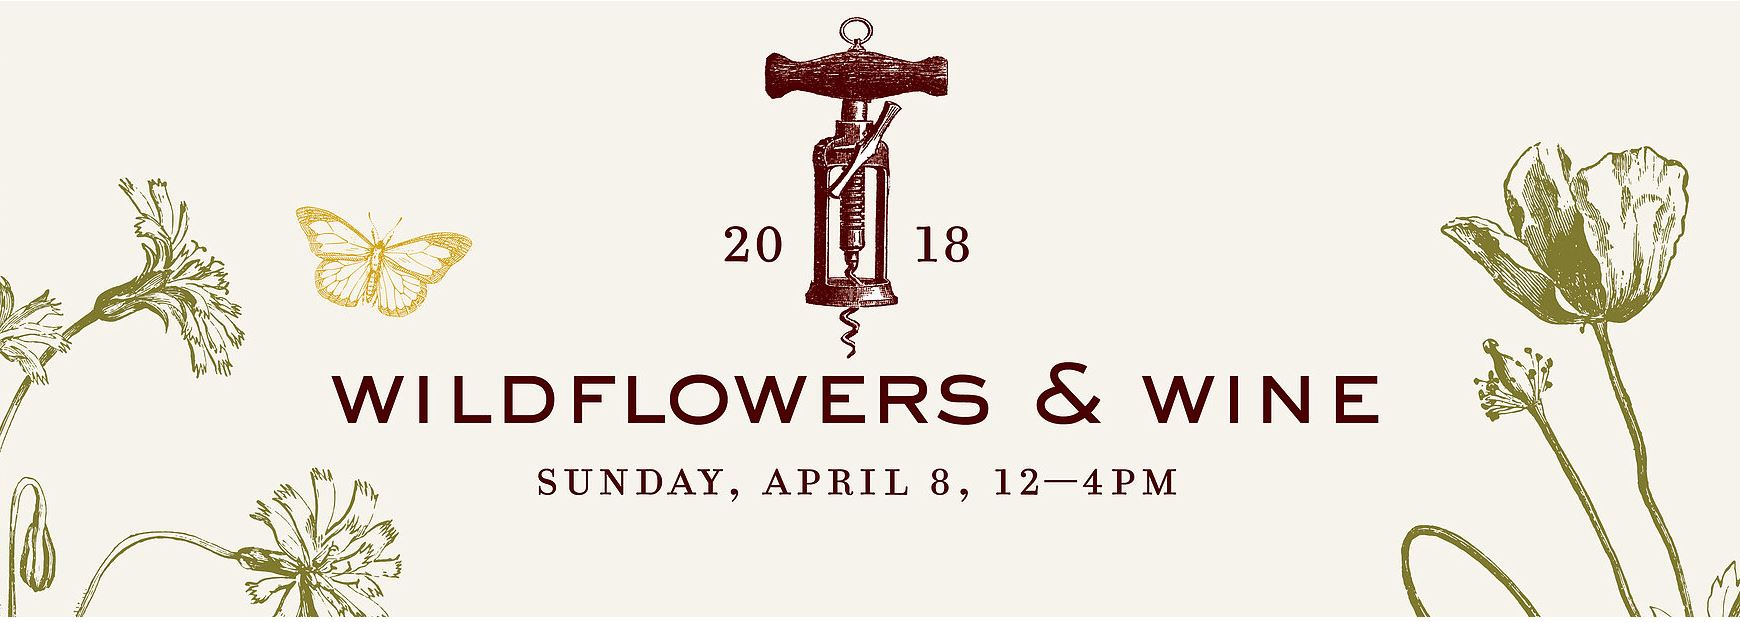 sutter creek wildflowers & wine event